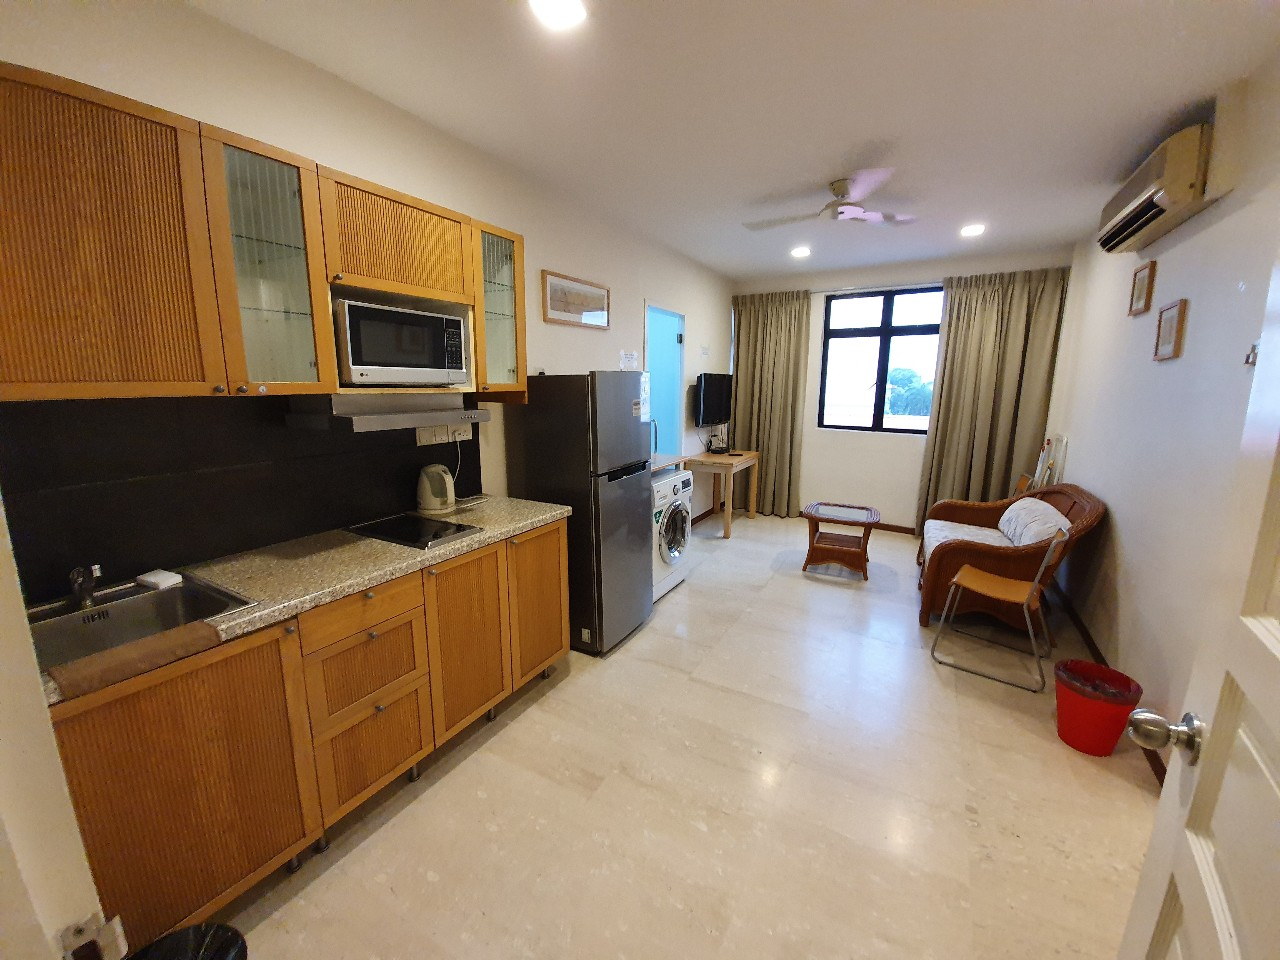 Crescent building, 1 bed serviced apartment, hostel, short term rental, balestier road